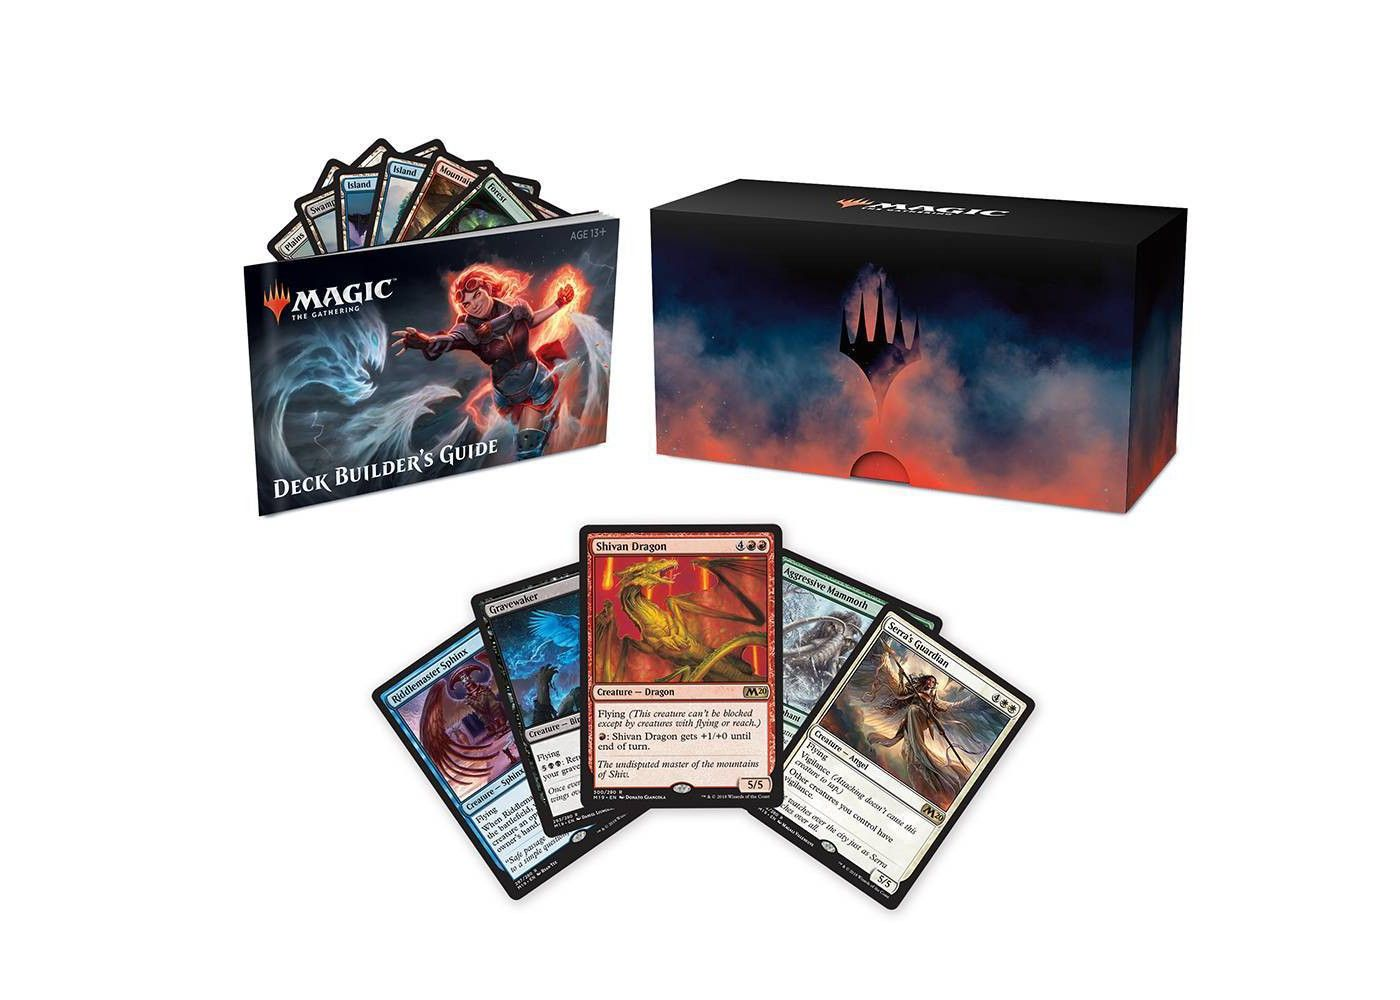 Magic The Gathering 2020 Core Bundle Set Affiliate Gathering Aff Magic Set In 2020 Magic The Gathering The Gathering Collectible Trading Cards